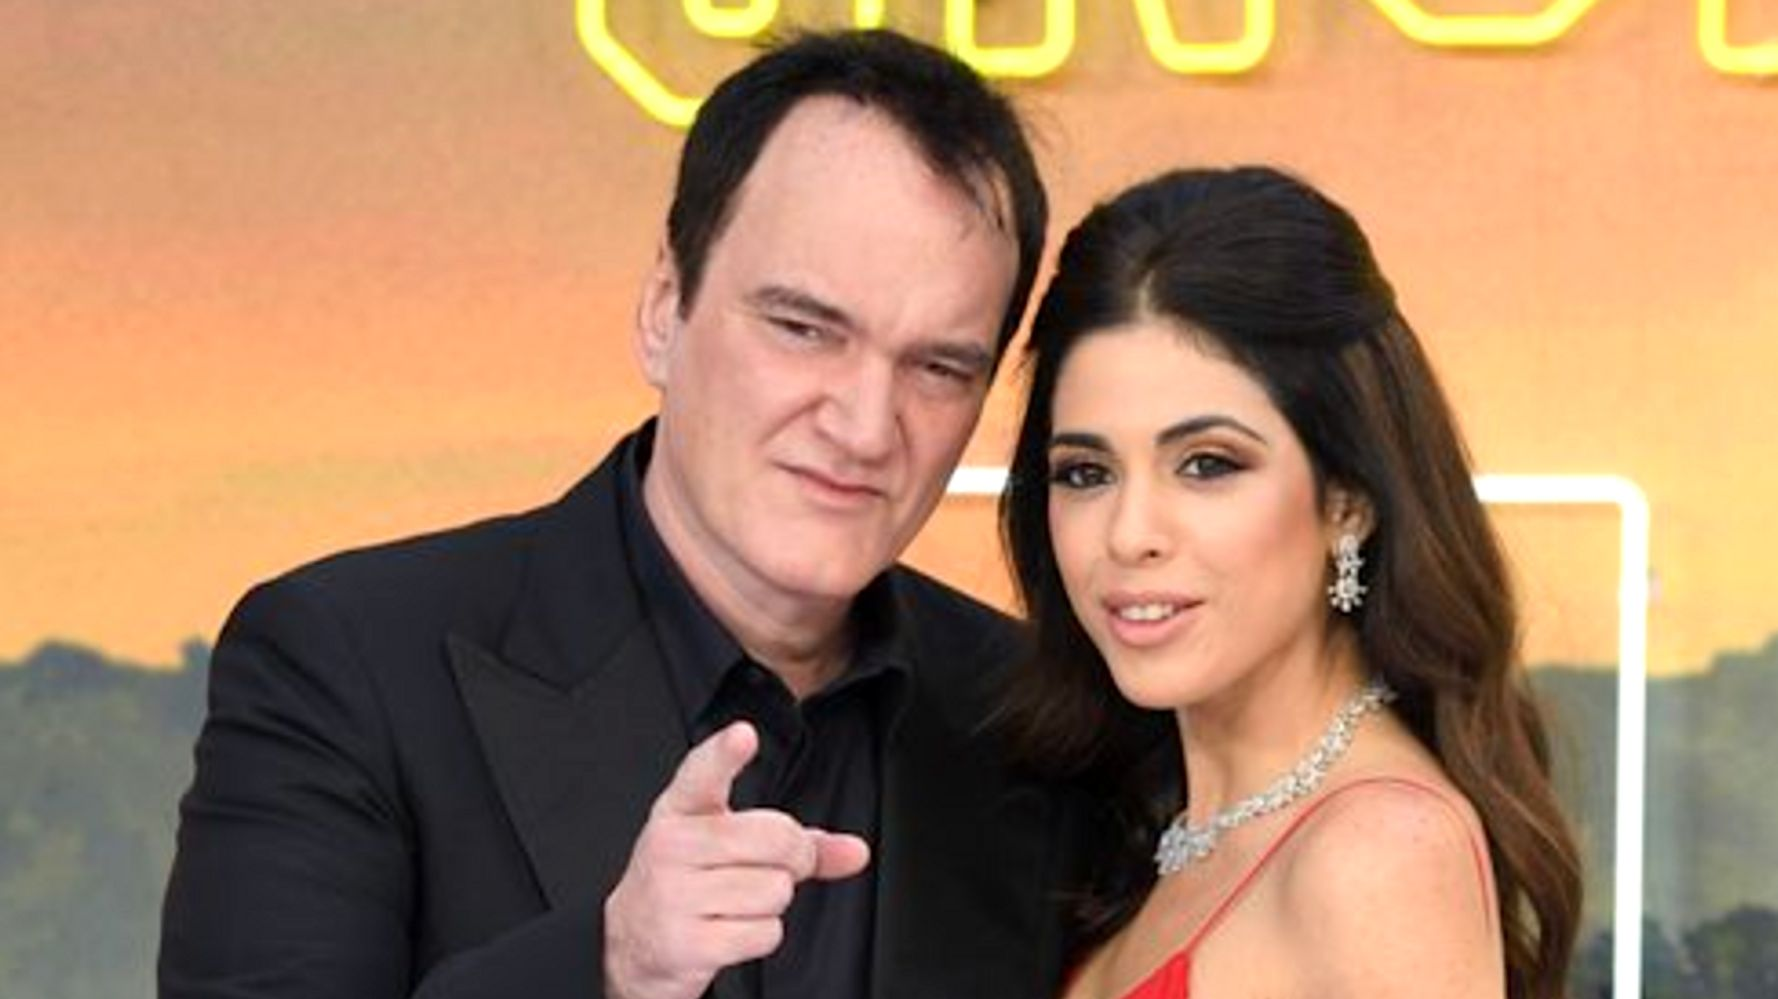 Westlake Legal Group 5d5e66002500004b006fbe8c Quentin Tarantino And Wife Daniella Are Expecting A Baby